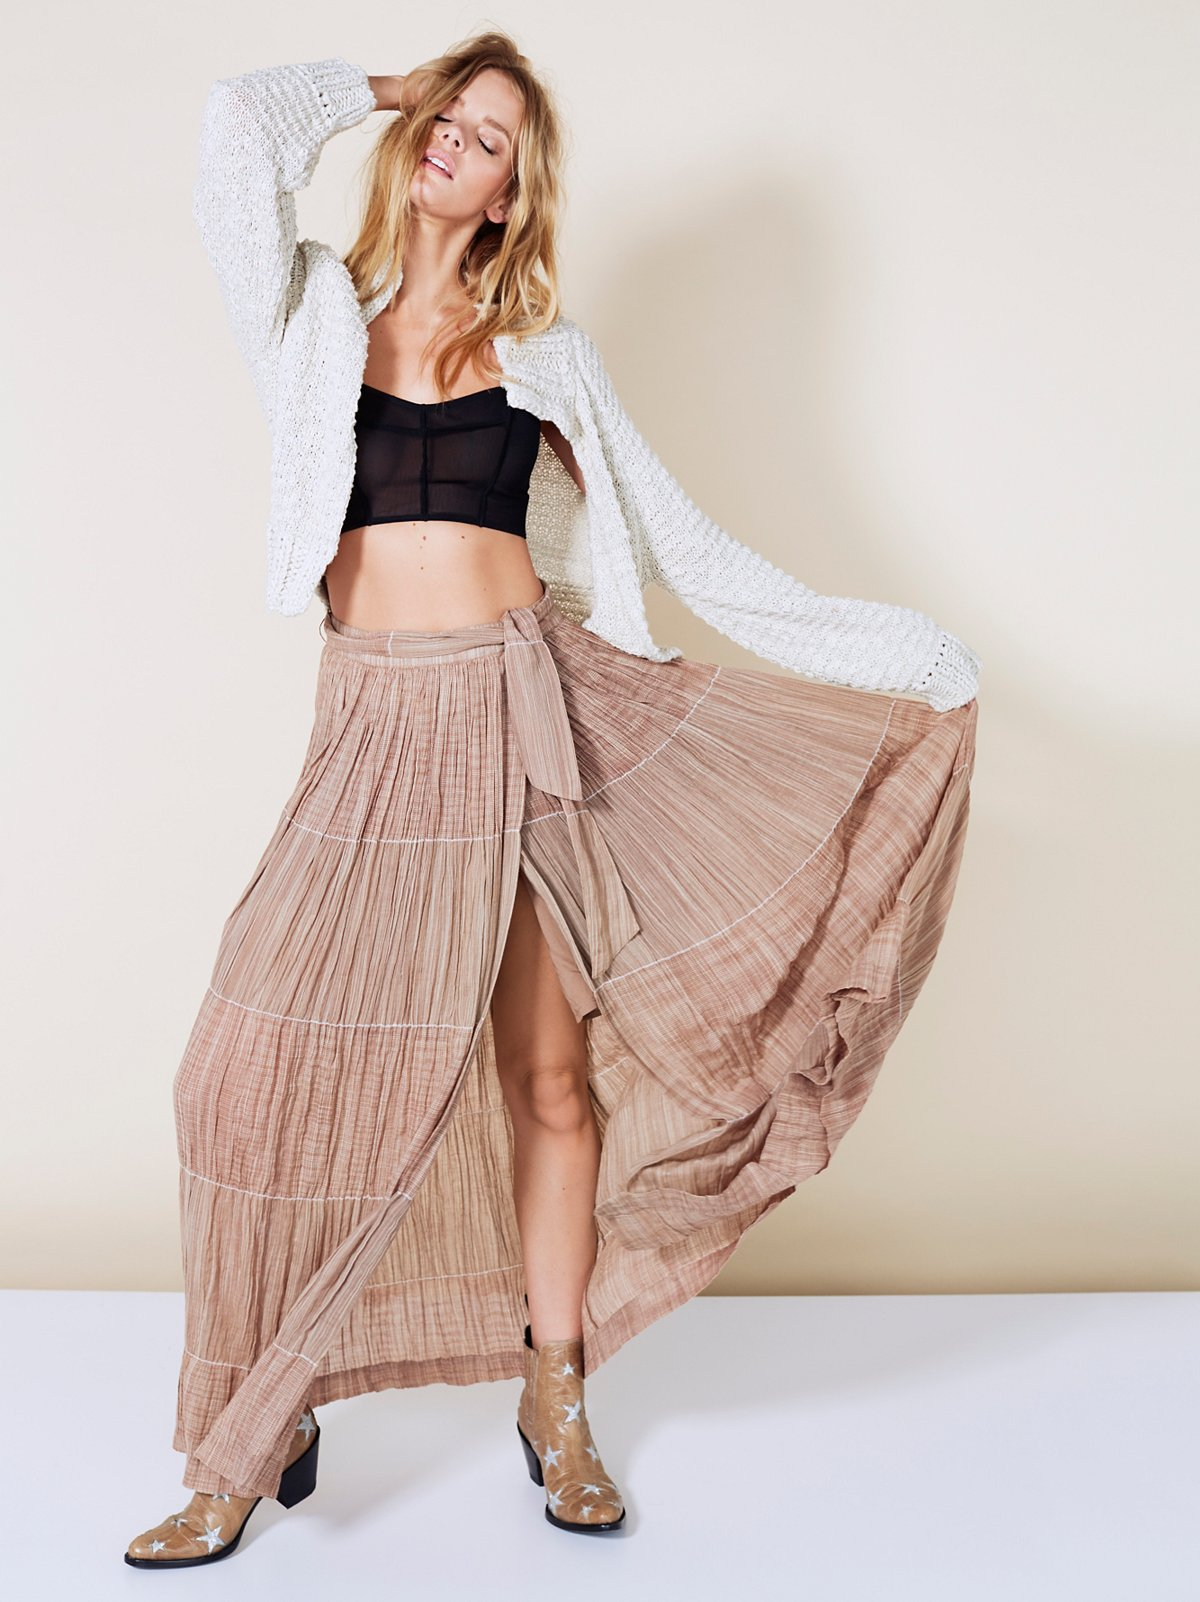 Wild Winds Maxi Skirt